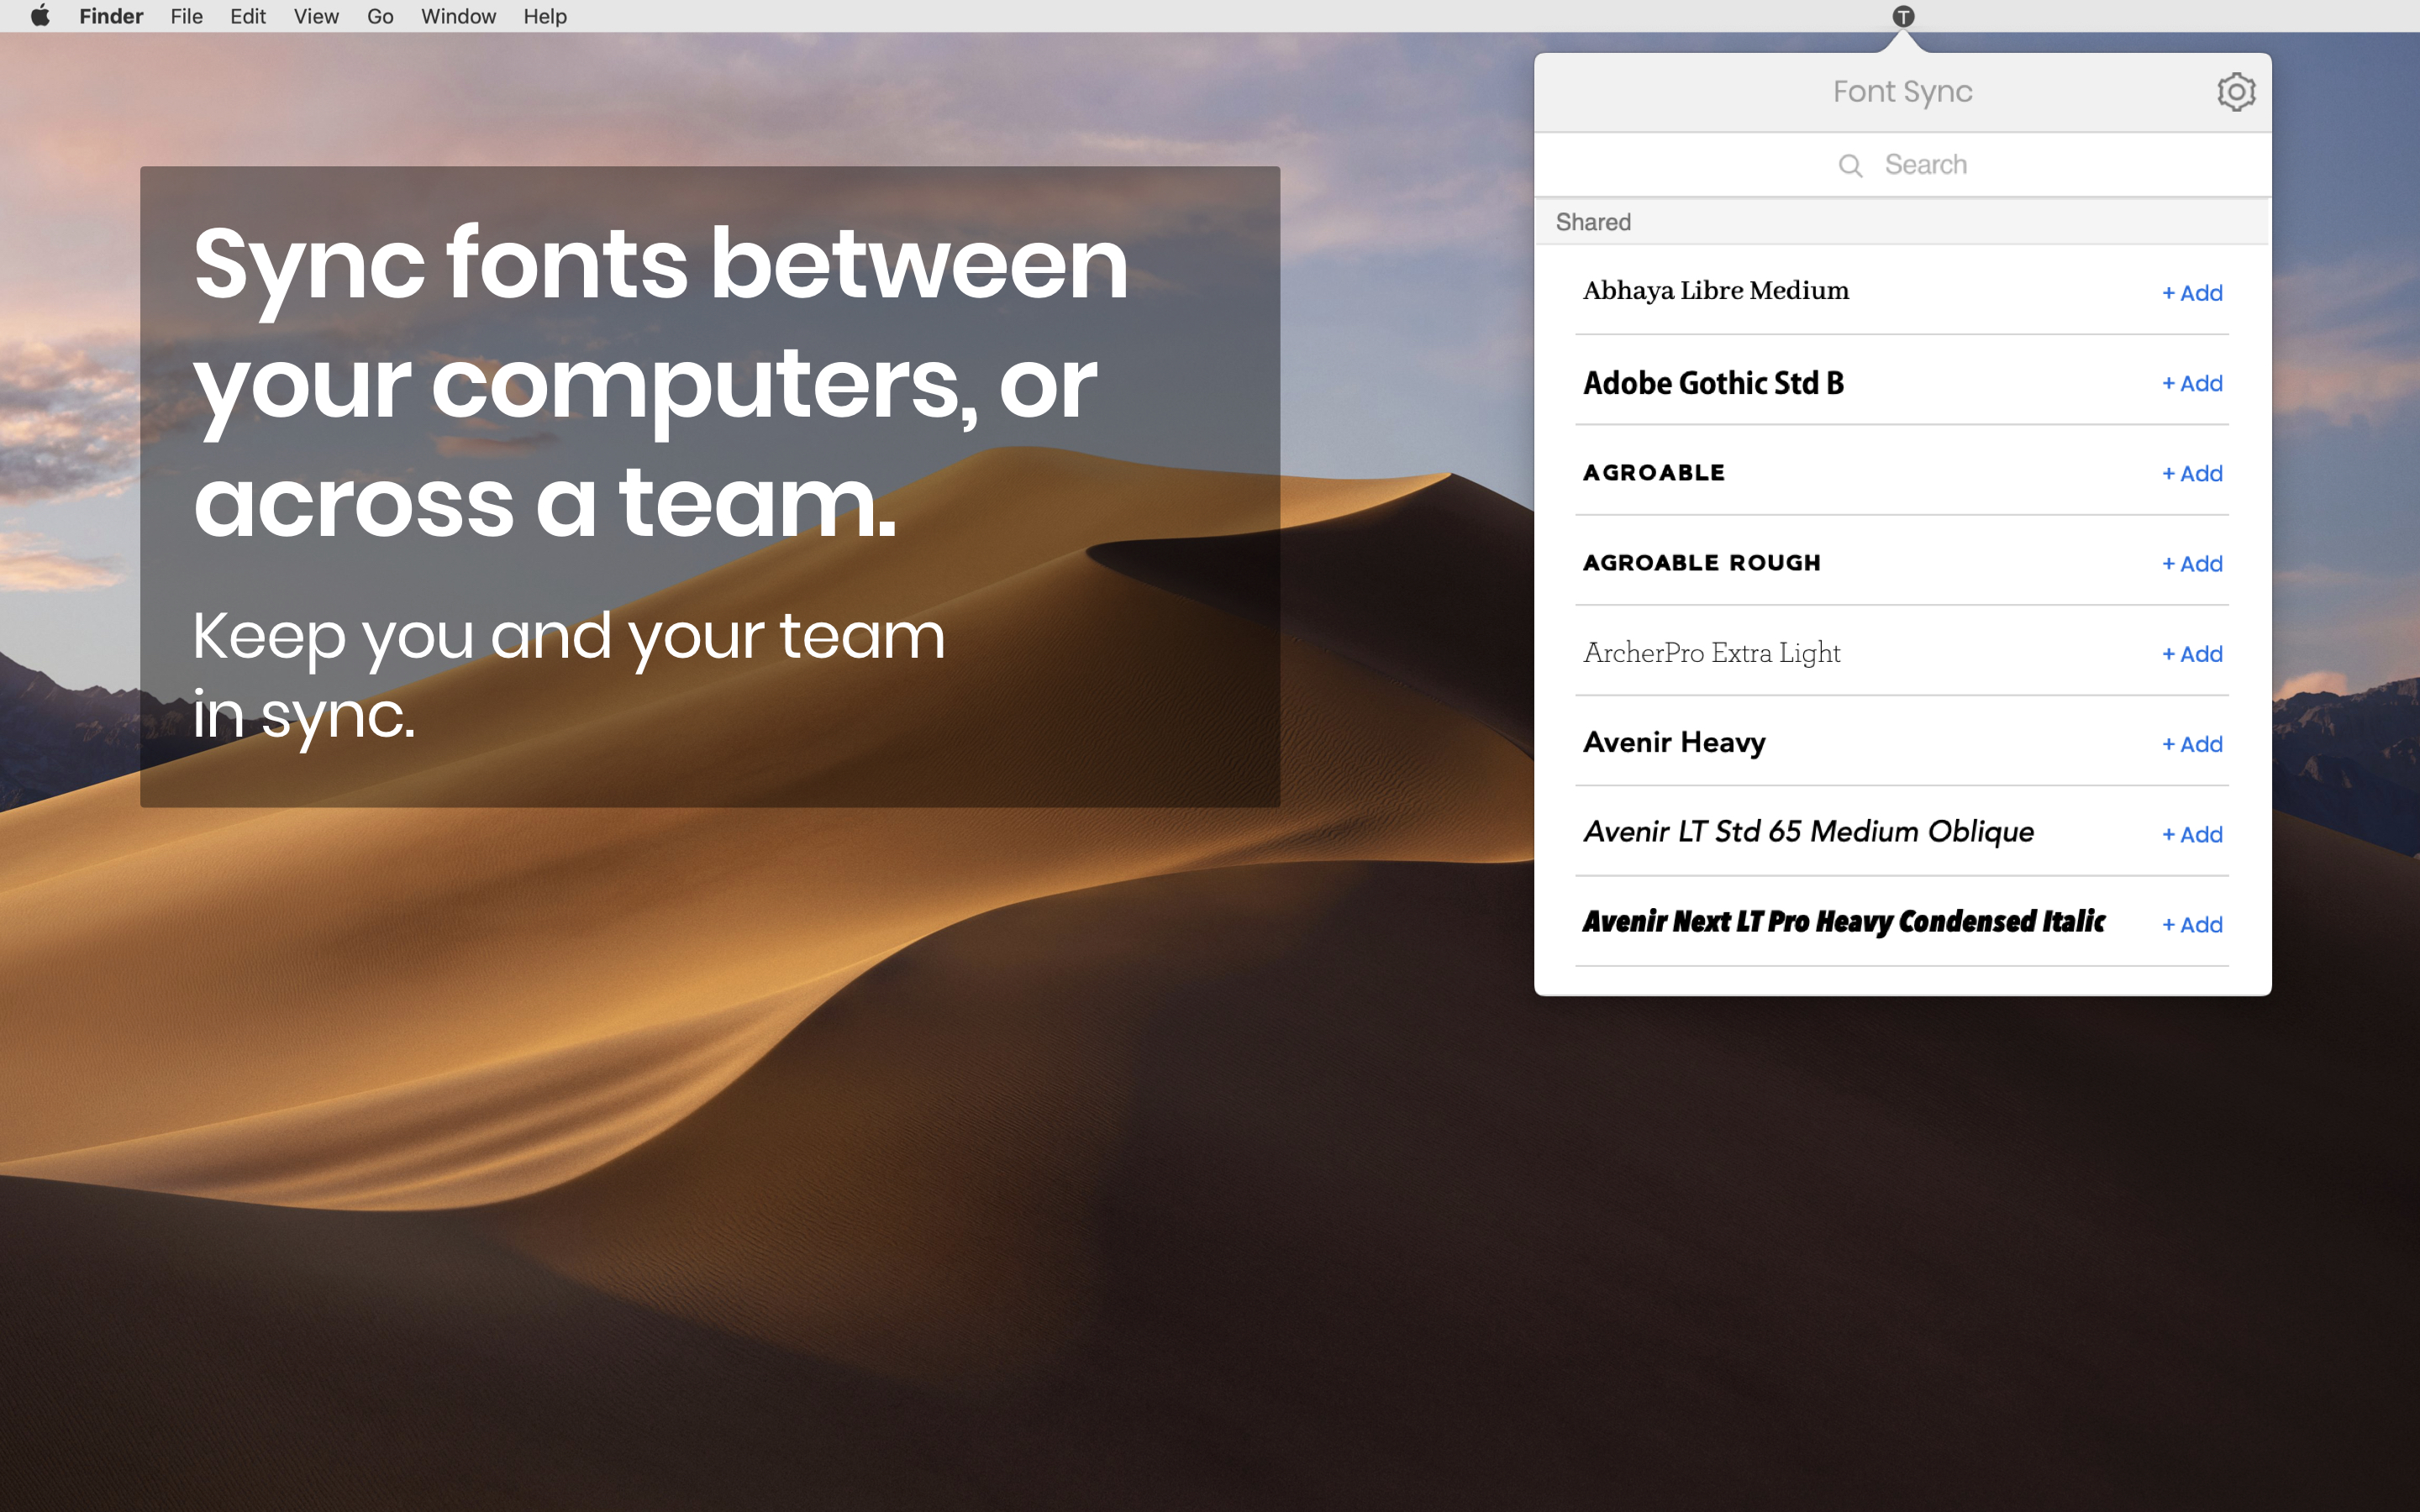 Keep your team in sync - distribute fonts with ease